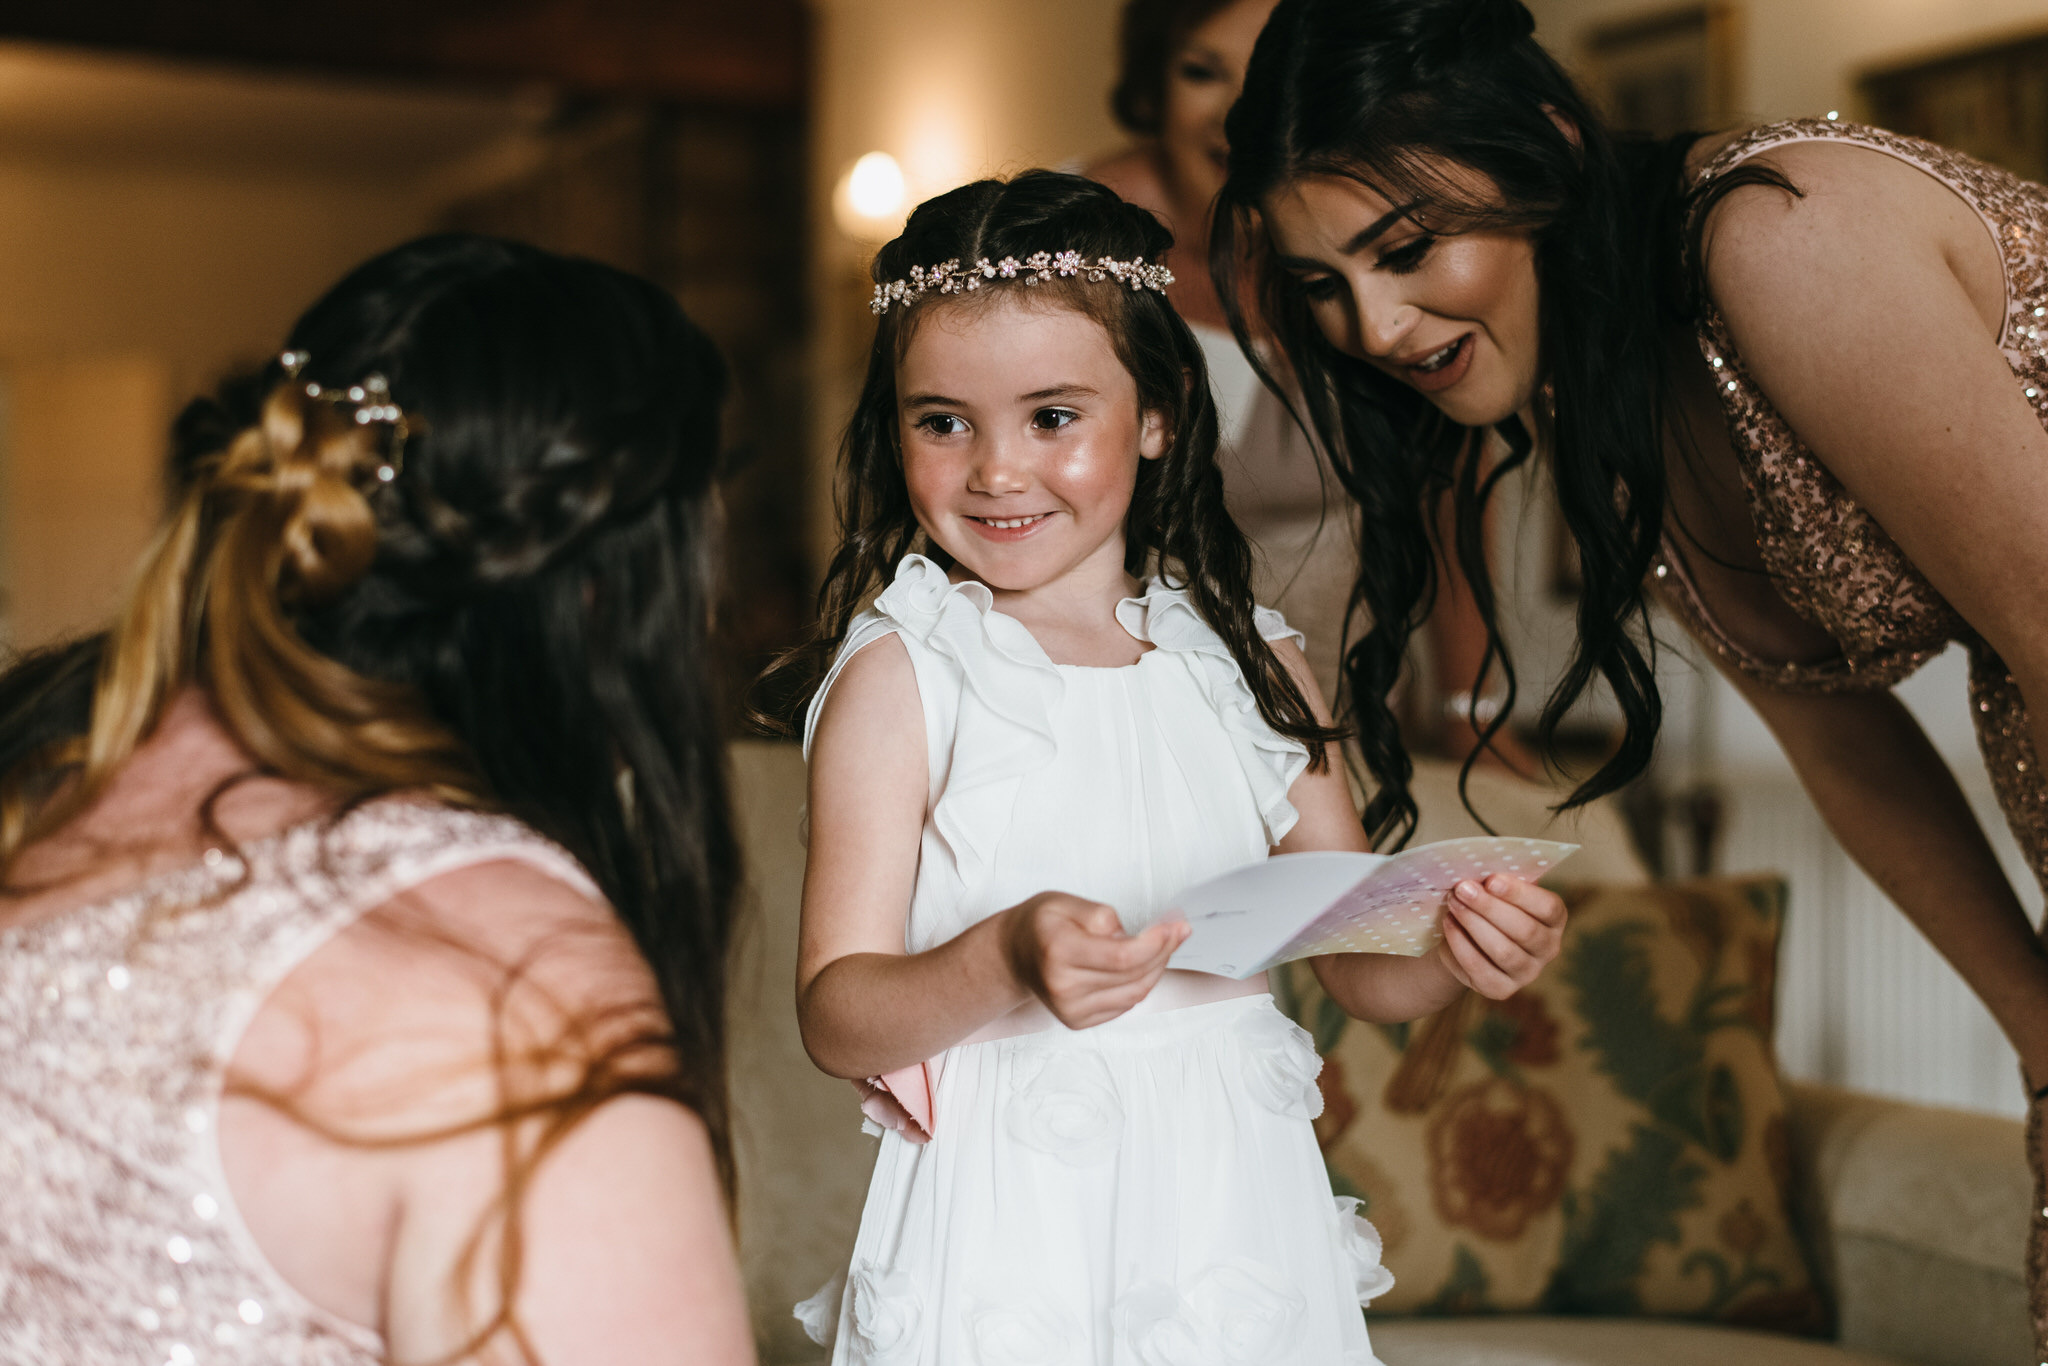 Flower girl gets given gift by bride